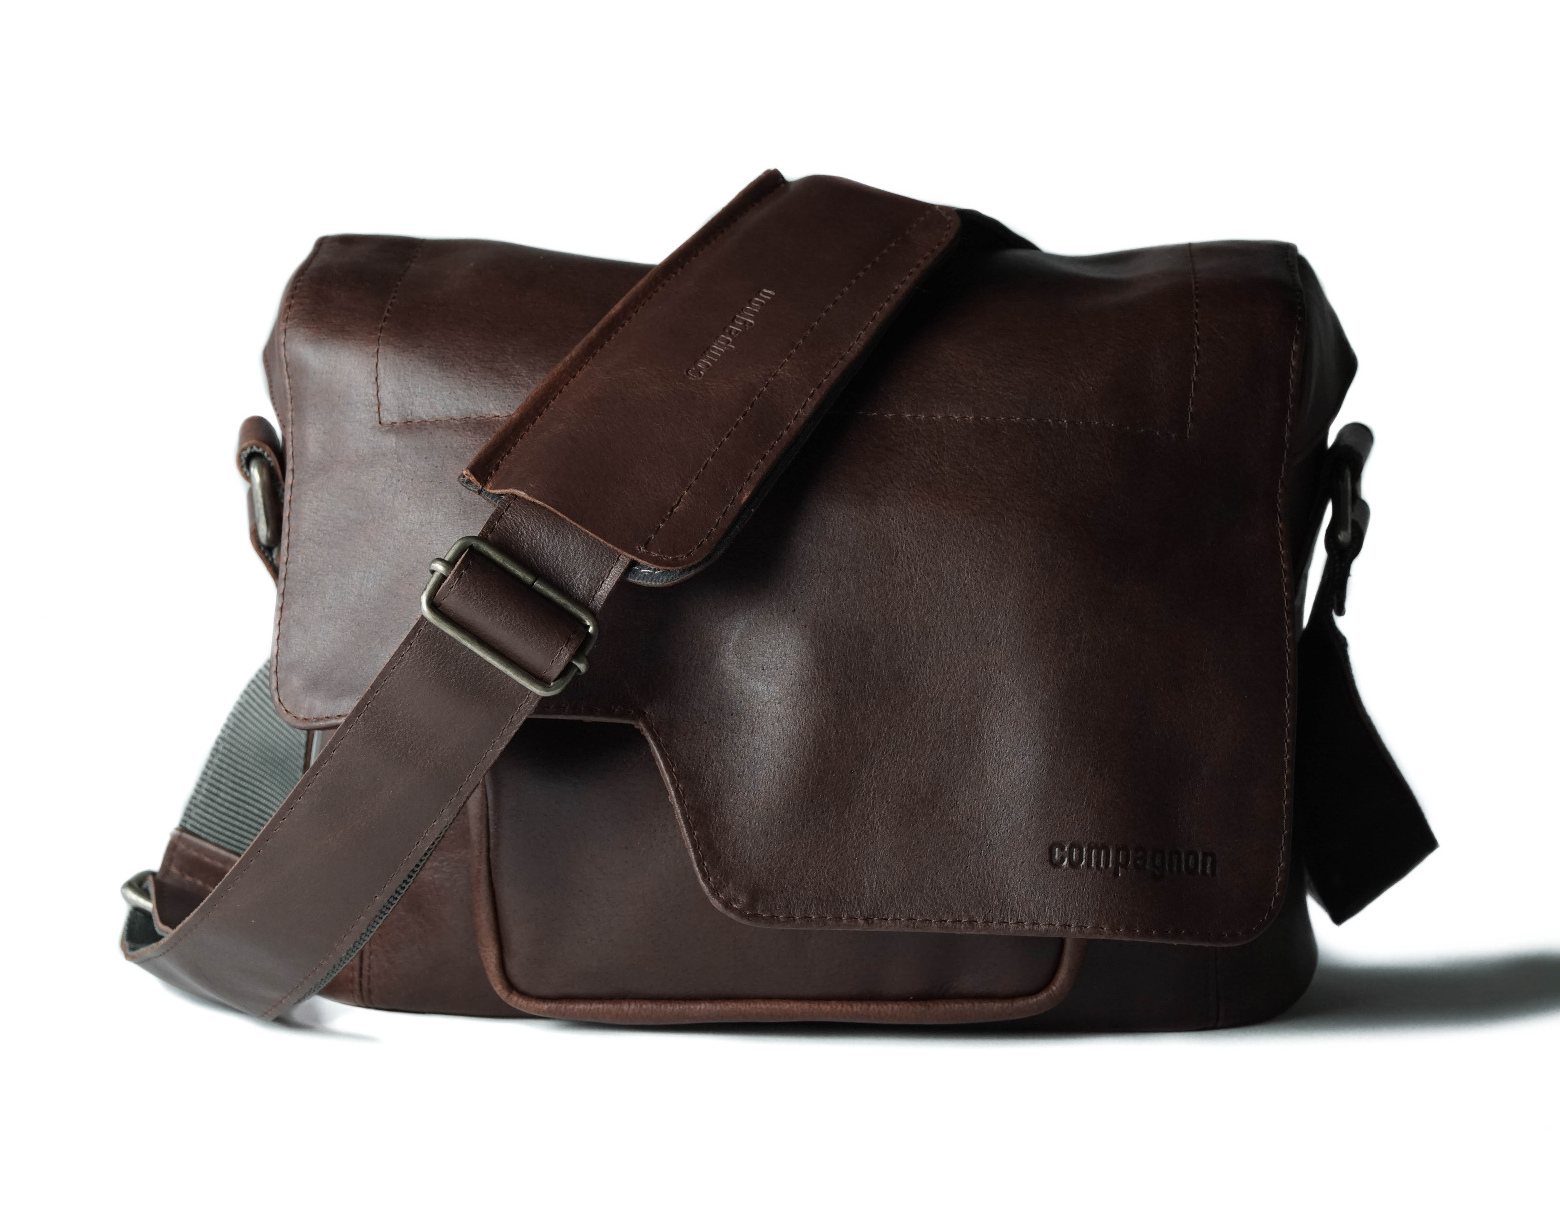 compagnon_little_messenger_dark_brown_207